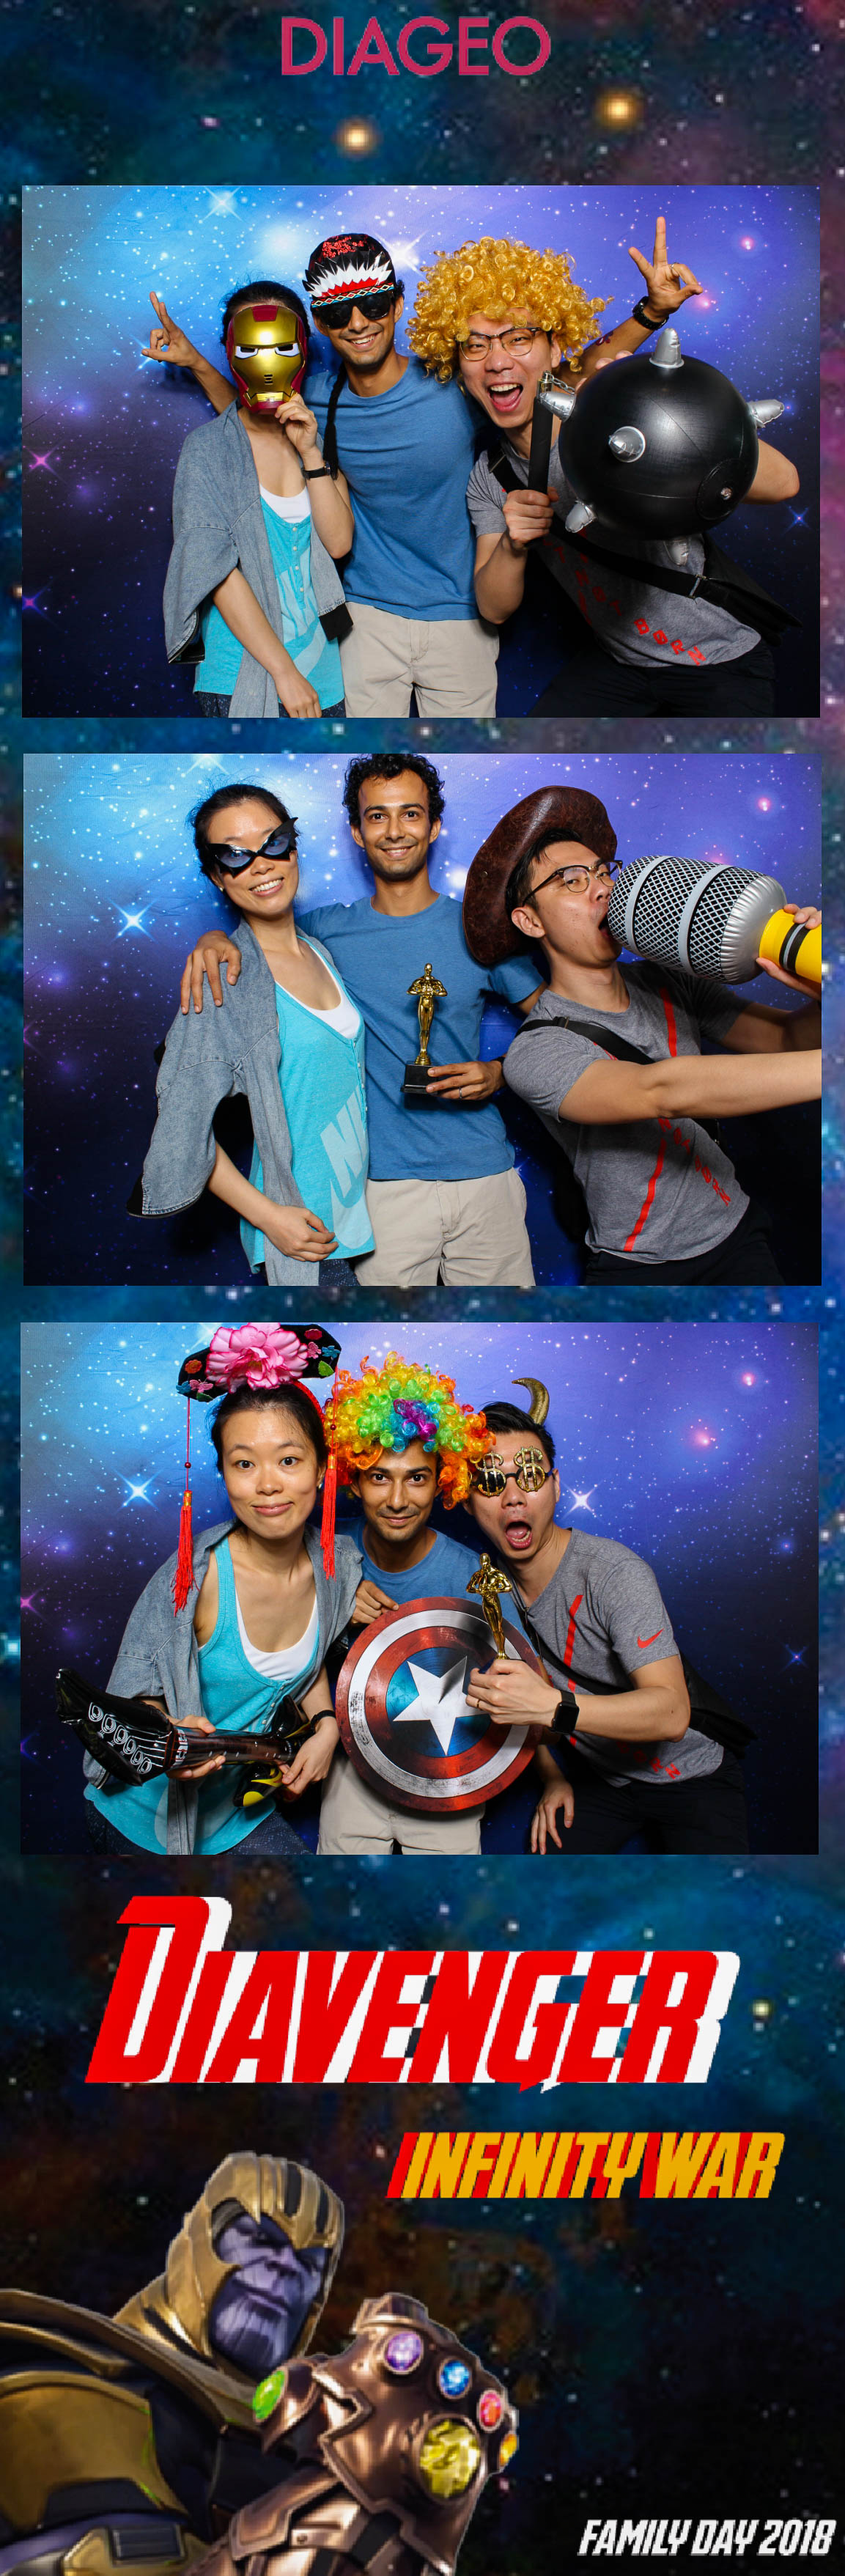 Photo booth 2306-14